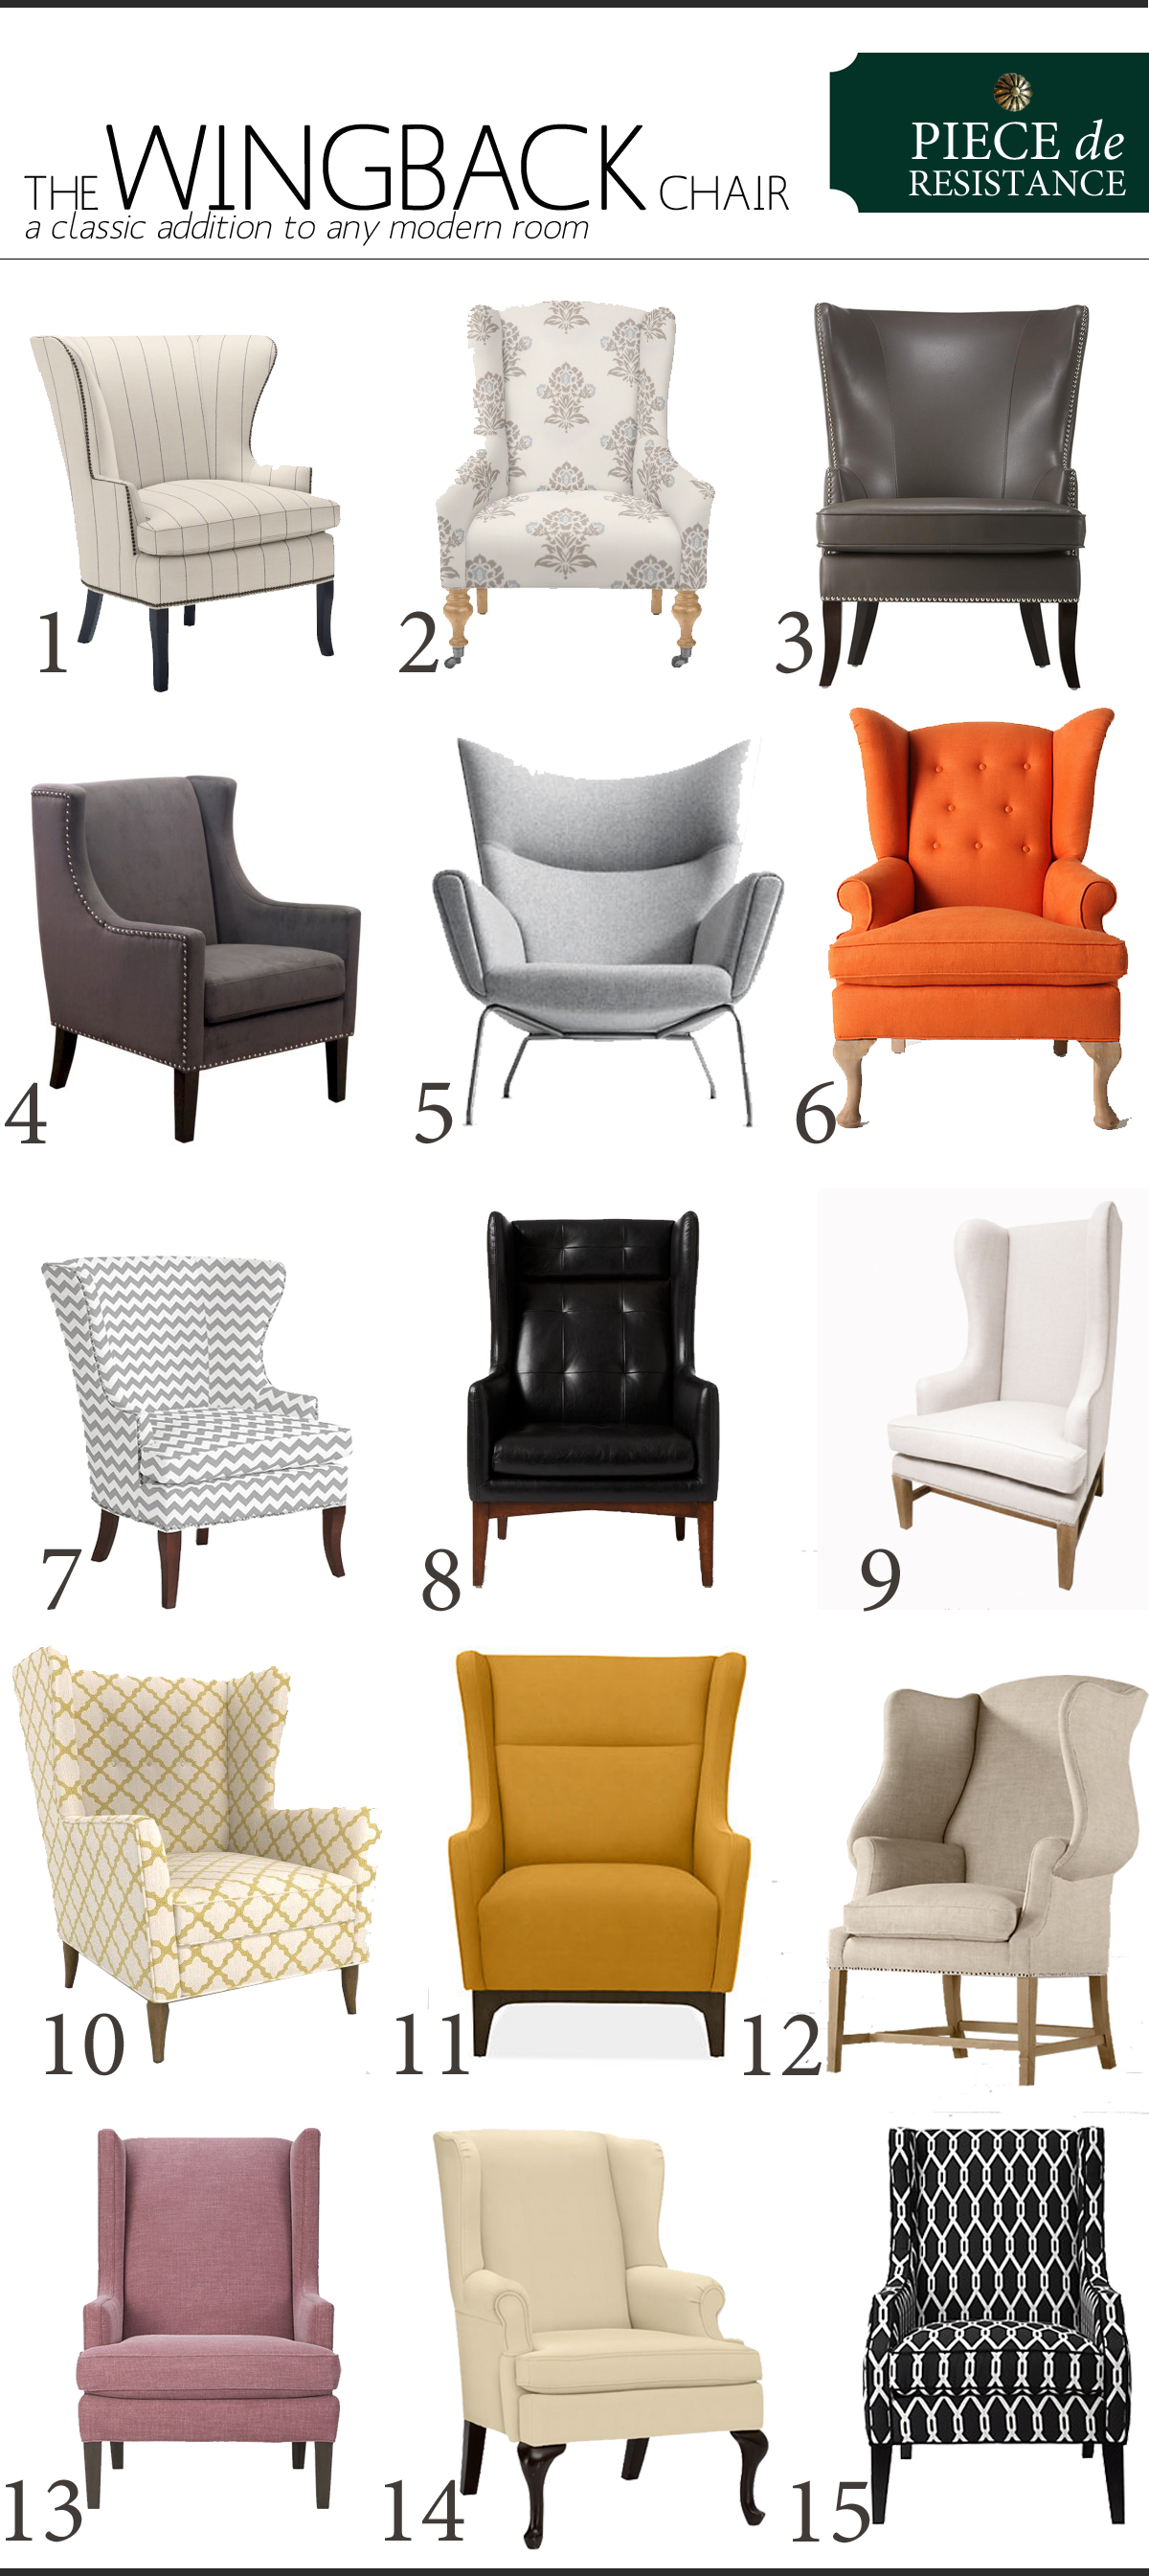 Modern Wingback Chair The Anatomy of Design